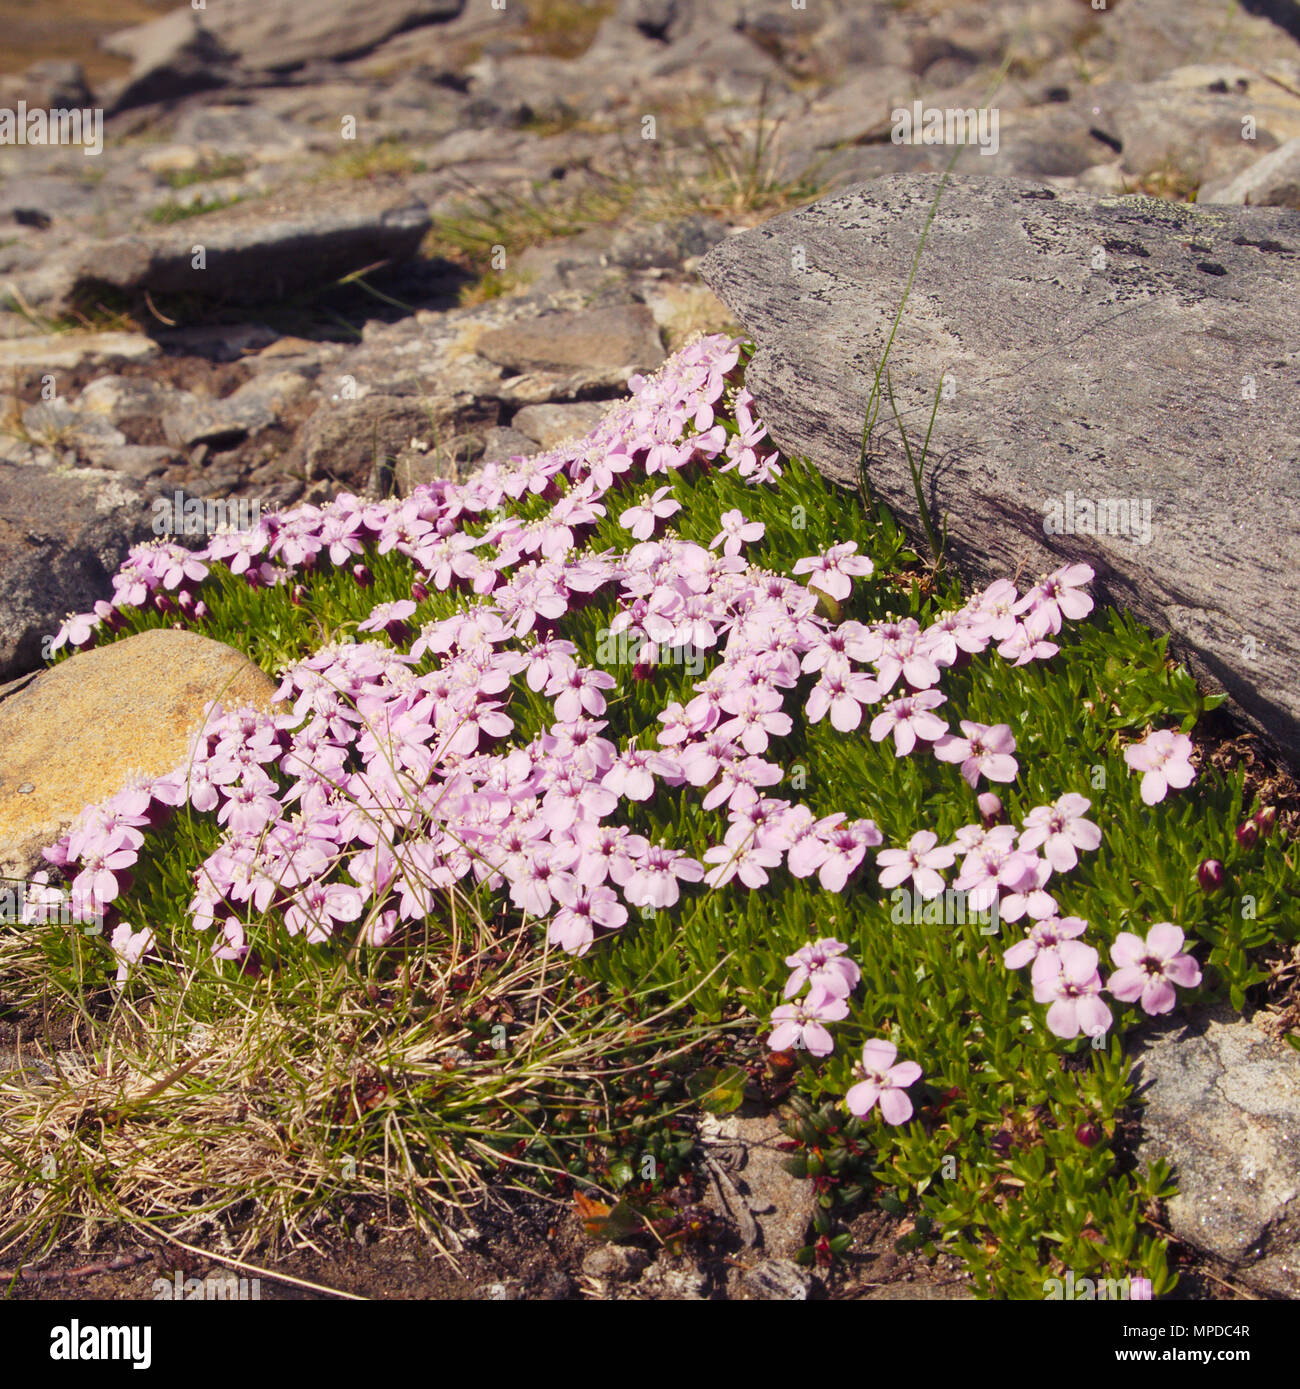 Pink arctic flowers stock photos pink arctic flowers stock images a bed of pink cushion flowers against a rock stock image mightylinksfo